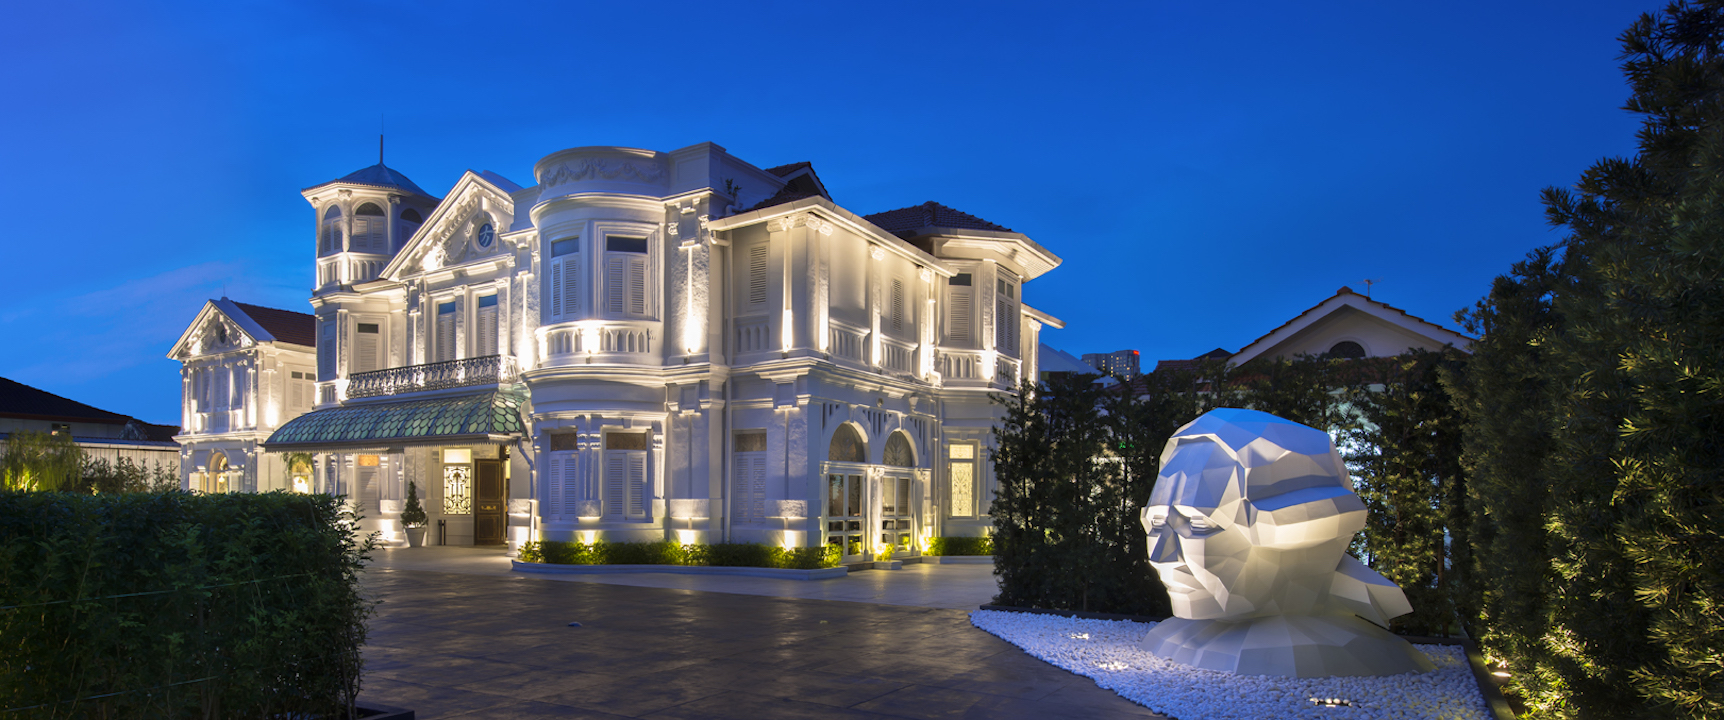 Macalister Mansion ***** Art & Design boutique hotel , Penang / Malaysia